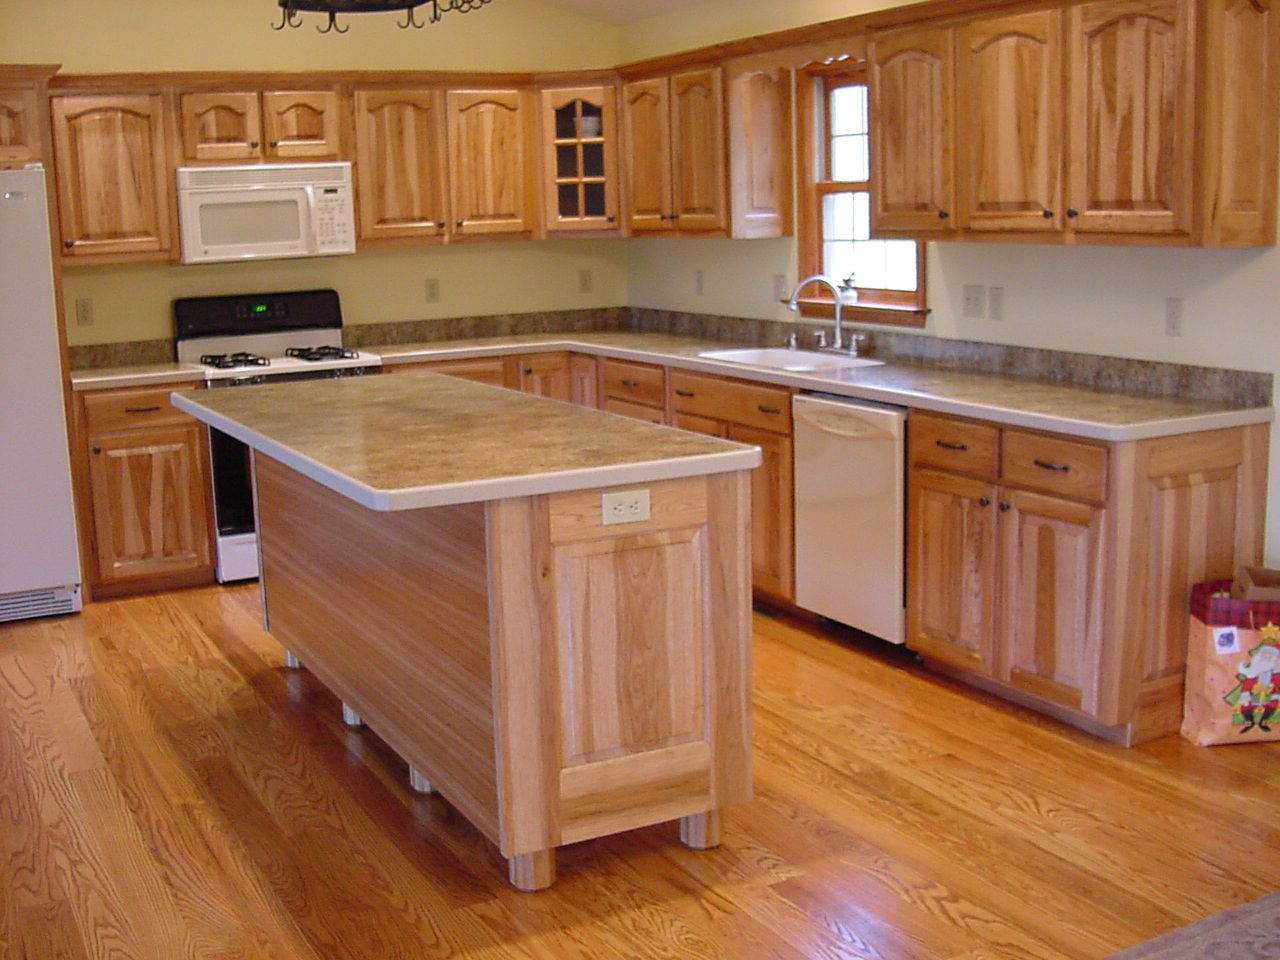 Countertops Laminate Countertops With Decorative Wood Edge New Condo Paint Designs